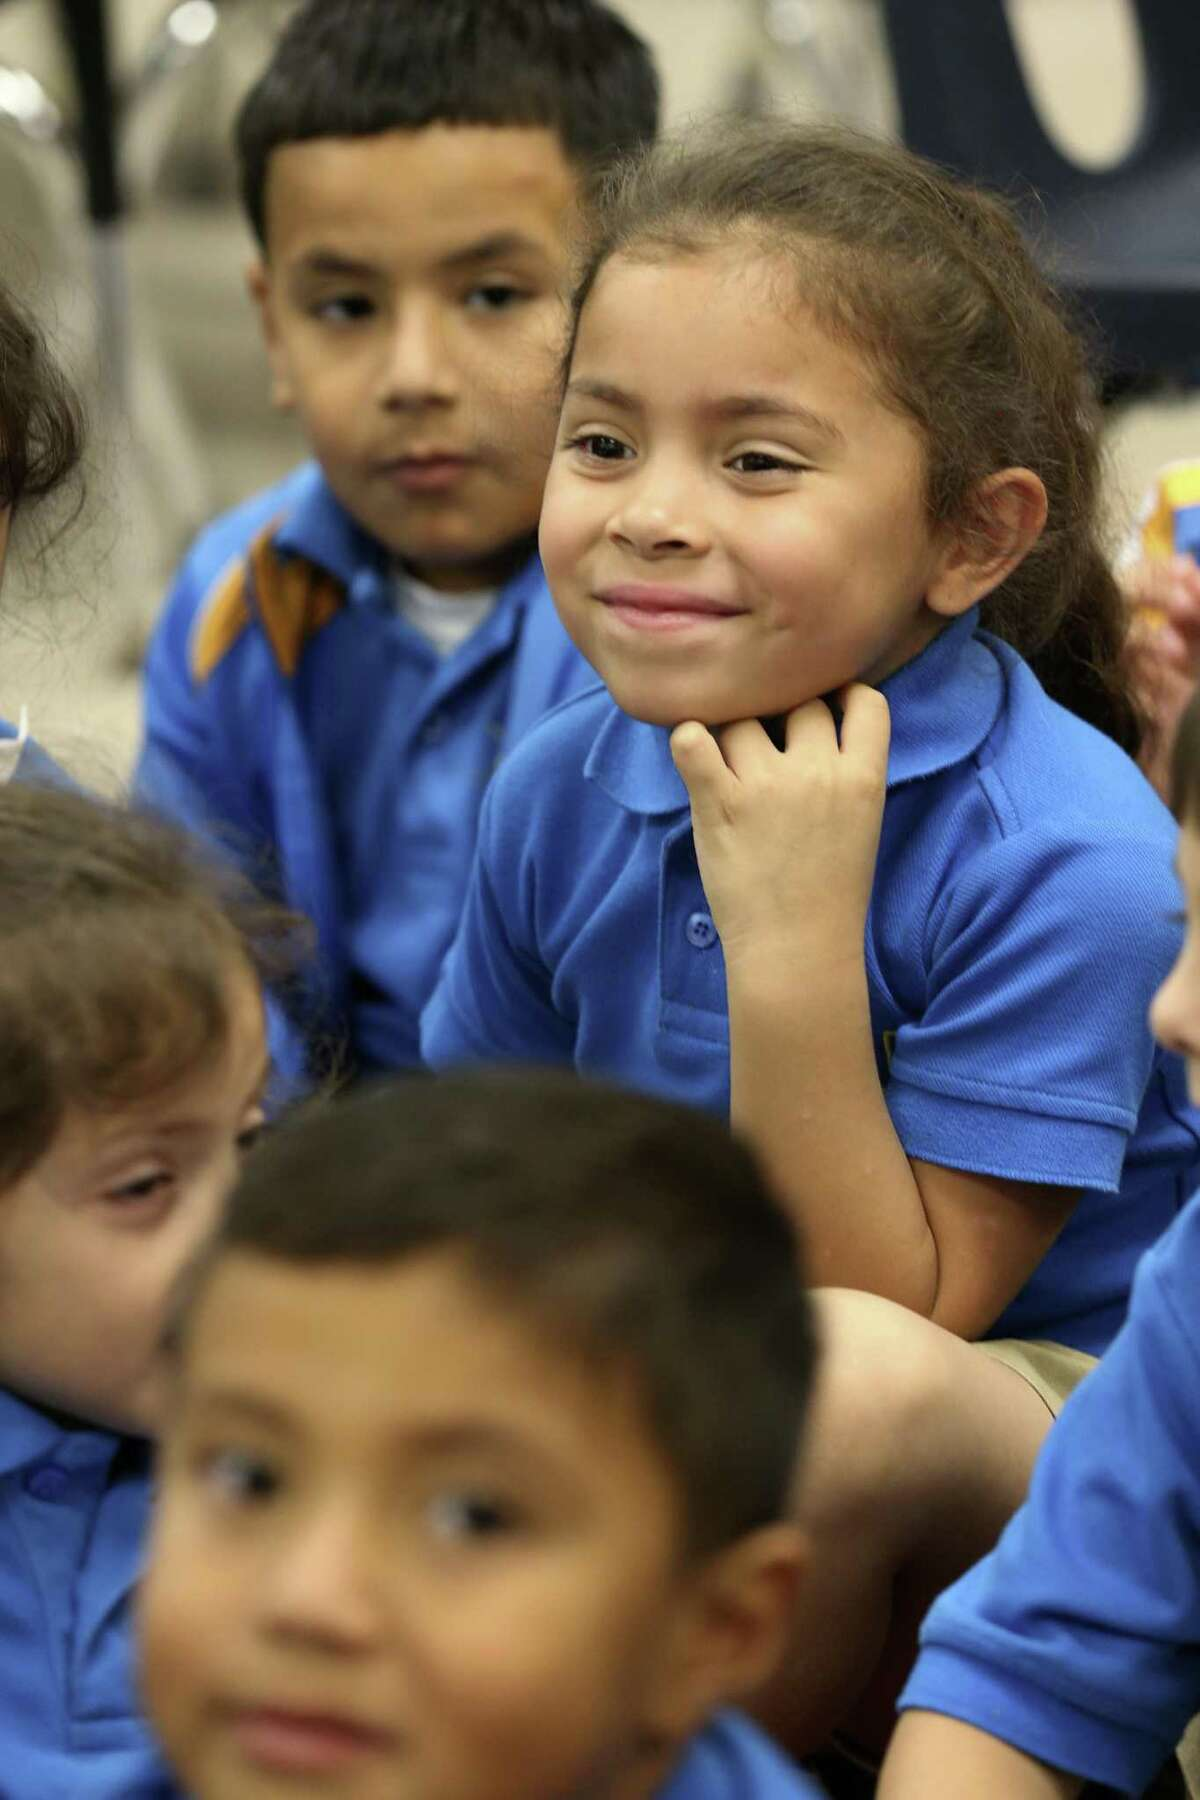 Annabelle Vasquez participates in a first grade english lesson at IDEA Monterrey Park on the city's West Side, Thursday, Oct. 5, 2017. IDEA Public Schools received a $67 million grant from the U.S. Department of Education that will allow it to expand.